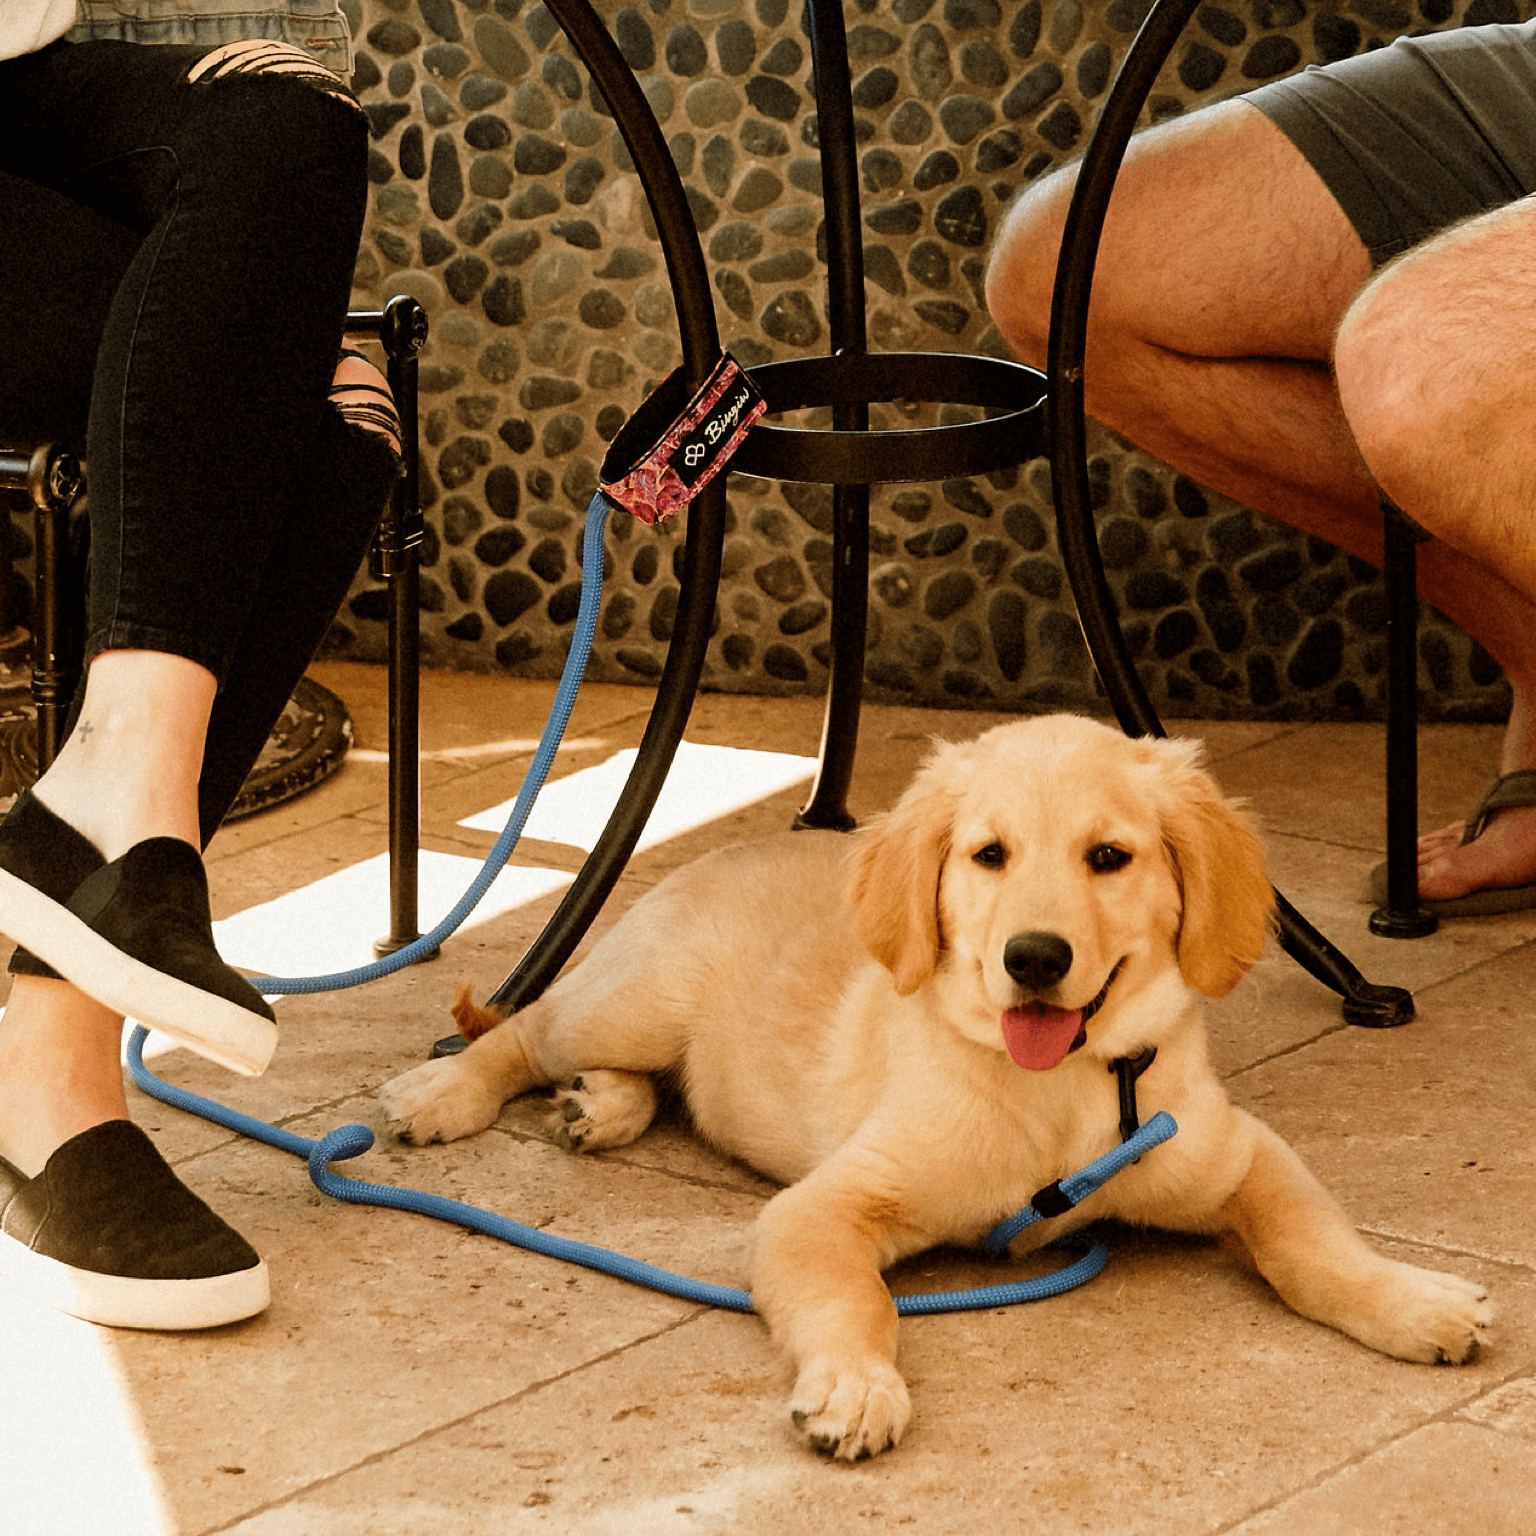 Bingin Dog 'Hanalei' surf-style dog leash tethering a Golden Retriever puppy to a table at Urth Caffe in Laguna Beach.